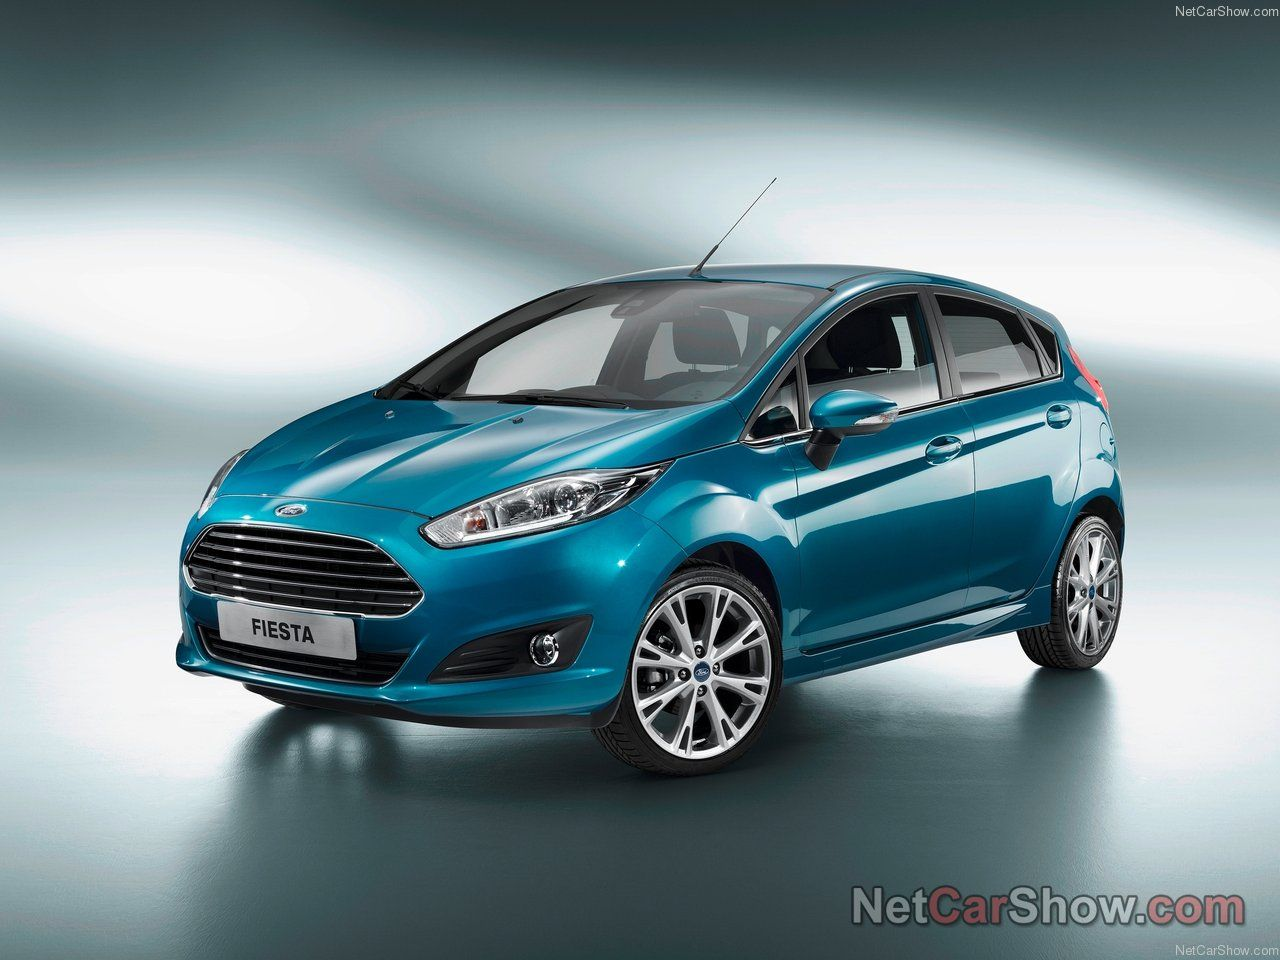 Ford Fiesta 2013 Fifi The Fiesta My Pretty Candy Blue Car Ford